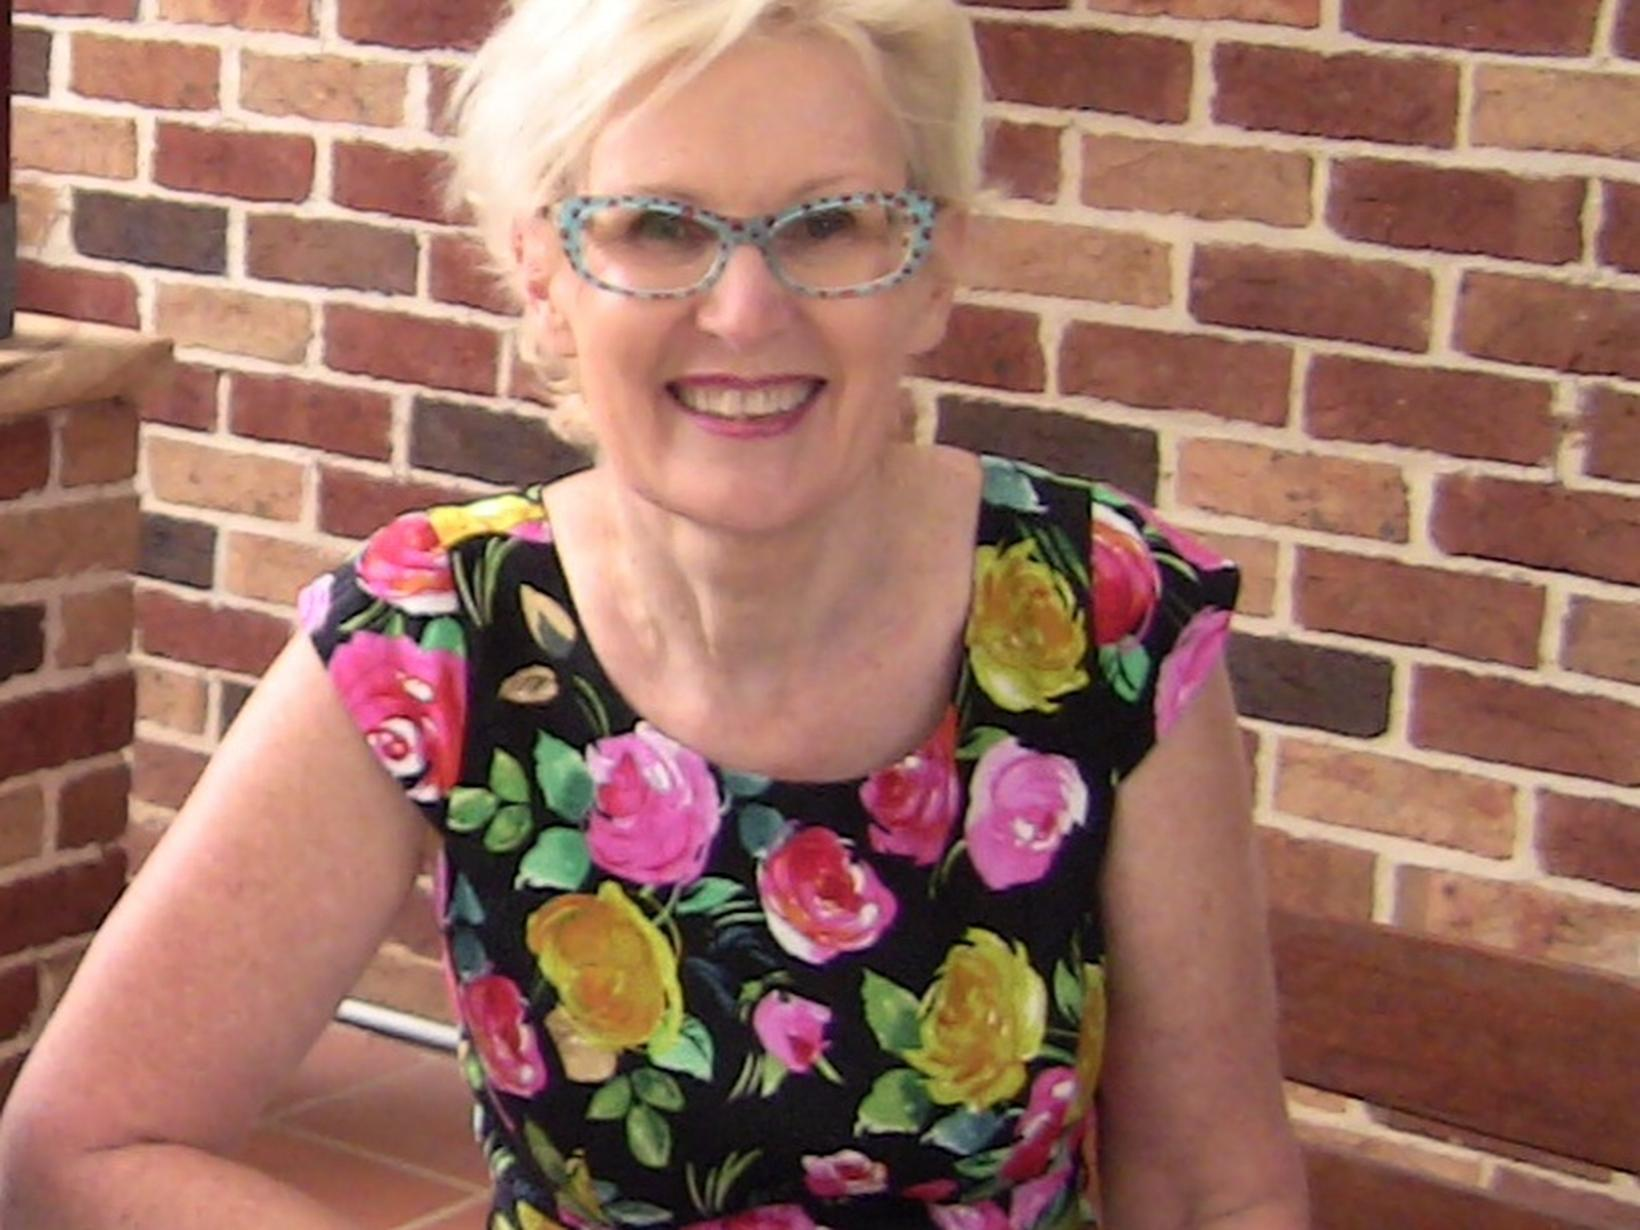 Helen from Brisbane, Queensland, Australia